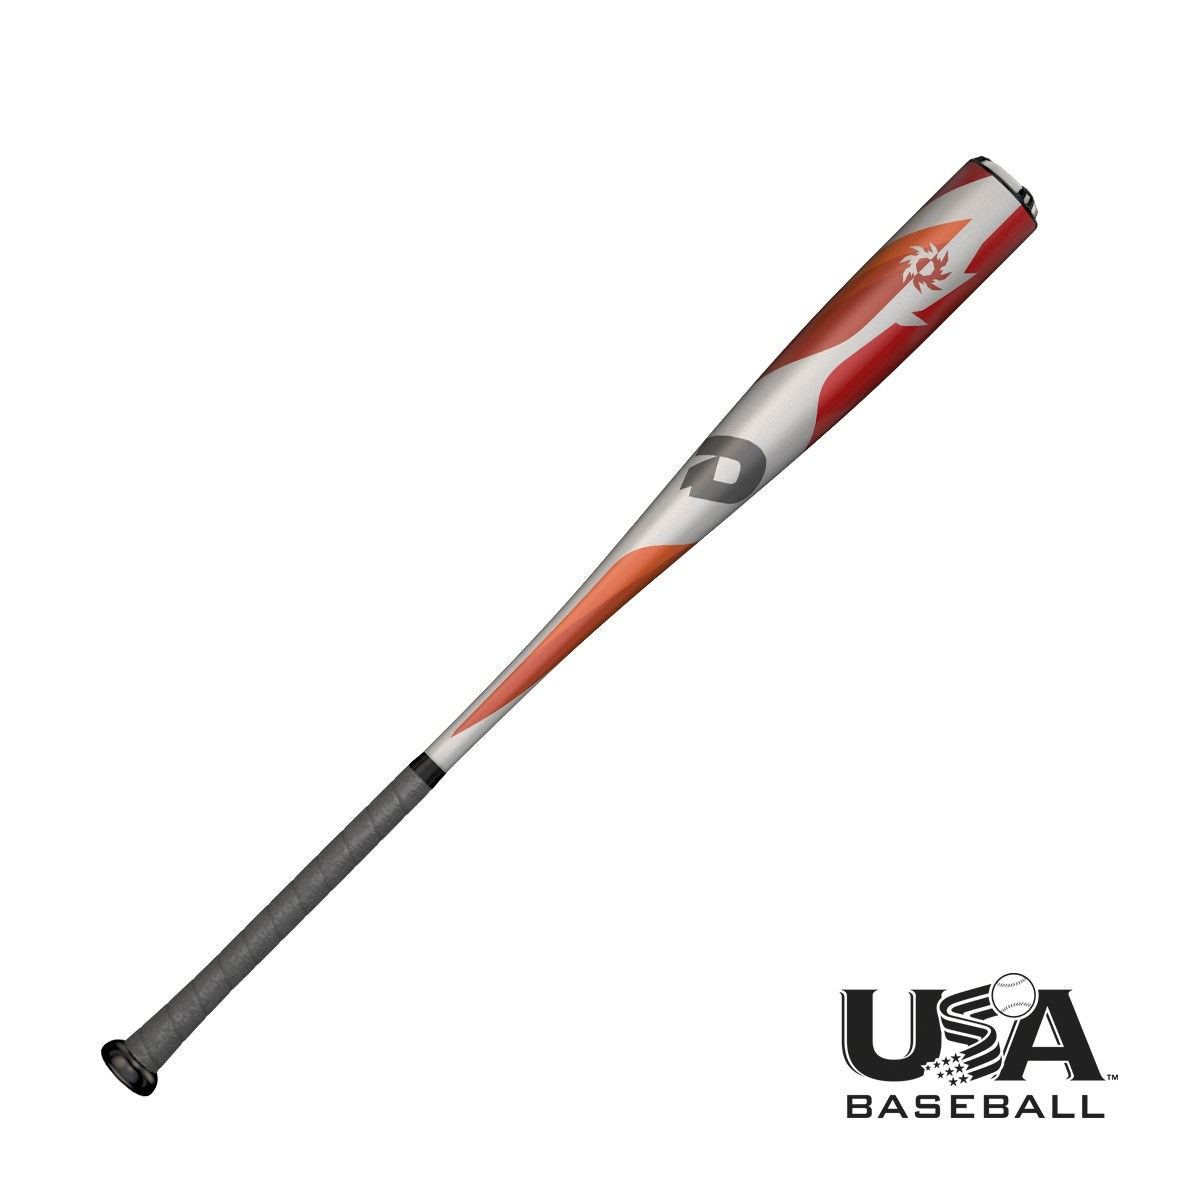 `-10 length to weight ratio 2 5/8 inch barrel diameter Balanced swing weight Approved for play in USA Baseball One year manufacturer's warranty The all new 2018 Voodoo One Balanced USA Baseball bat from DeMarini is a great light-swinging option for the junior high aged player who prefers the feel of a one-piece aluminum bat. DeMarini's X14 Alloy allows for more precise weight distribution and the 3Fusion End Cap optimizes the bat's sweet spot for a sound and feel that players love. New for the 2018 season, these bats are certified for all USA Baseball play. Comes with a 1 year manufacturer's warranty from DeMarini. - -10 length to weight ratio - 2 5/8 inch barrel diameter - Balanced swing weight - One-Piece X14 Alloy for more precise weight distribution - 3Fusion End Cap optimizes sweet spot, sound and feel through the barrel - Approved for play in USA Baseball - One year manufacturer's warranty